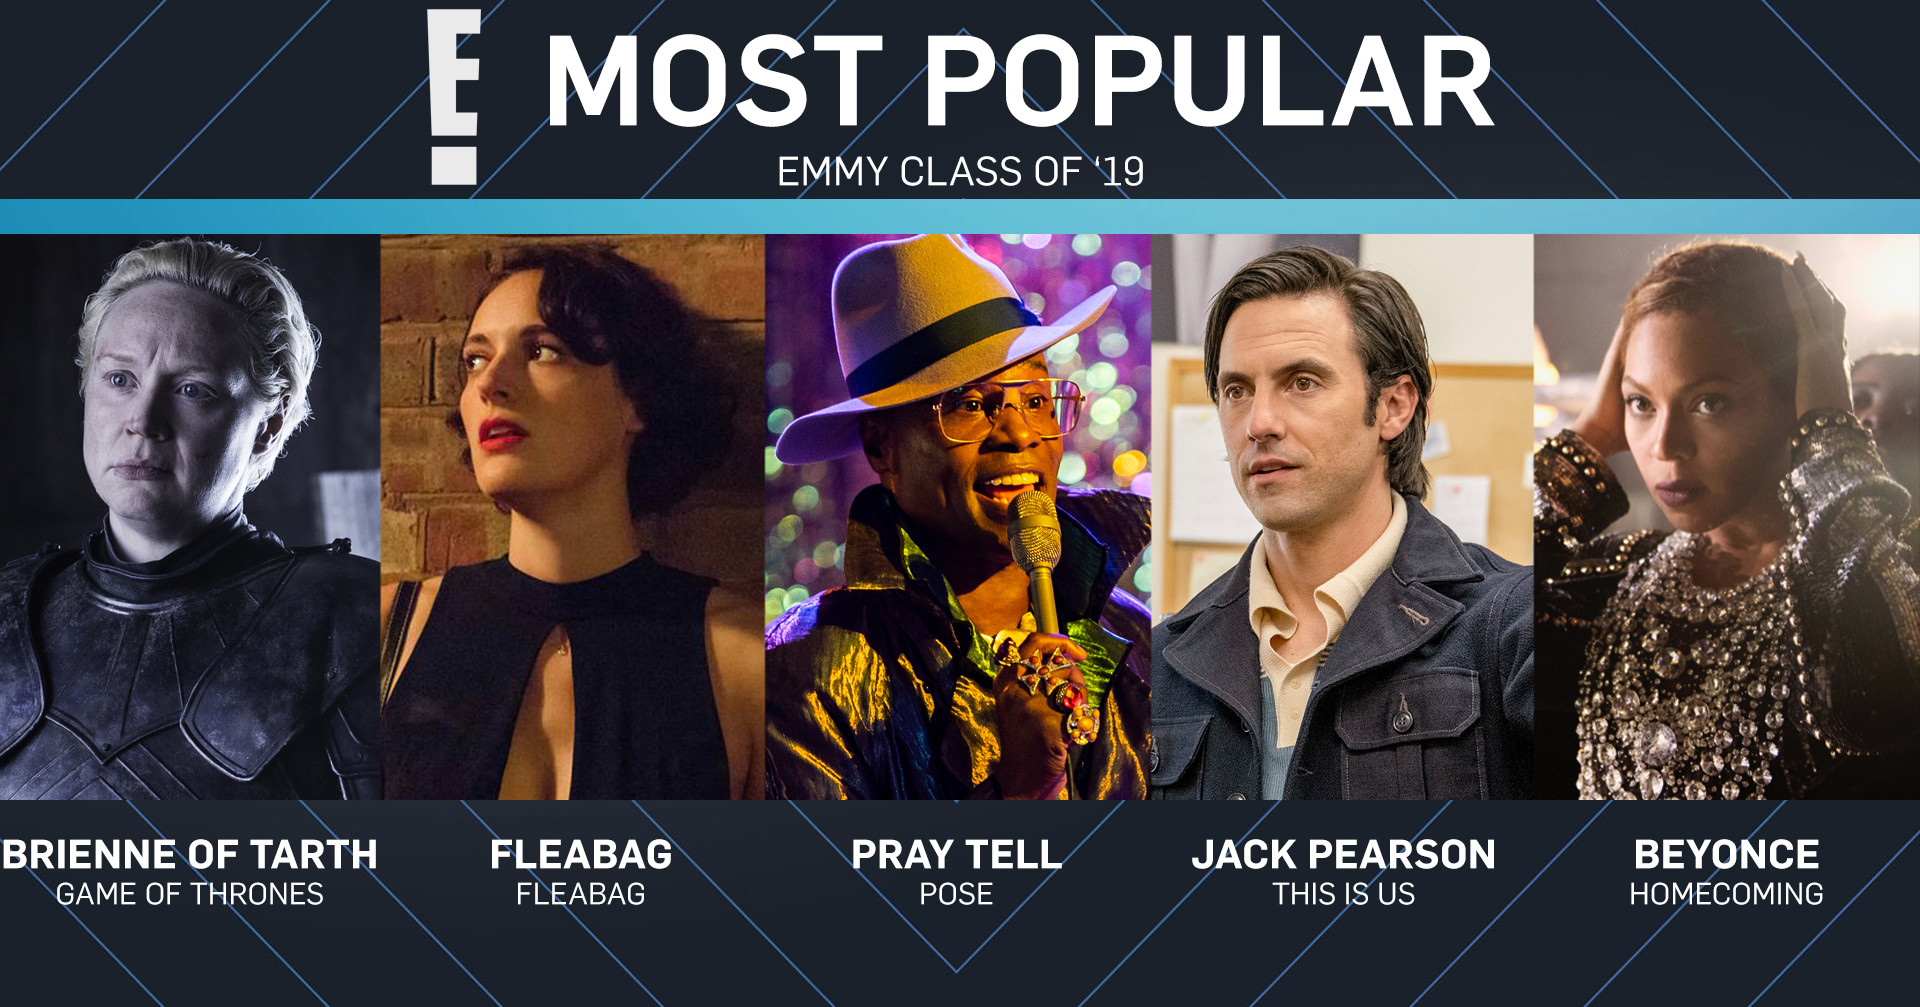 Emmy Class of 2019, Most Popular